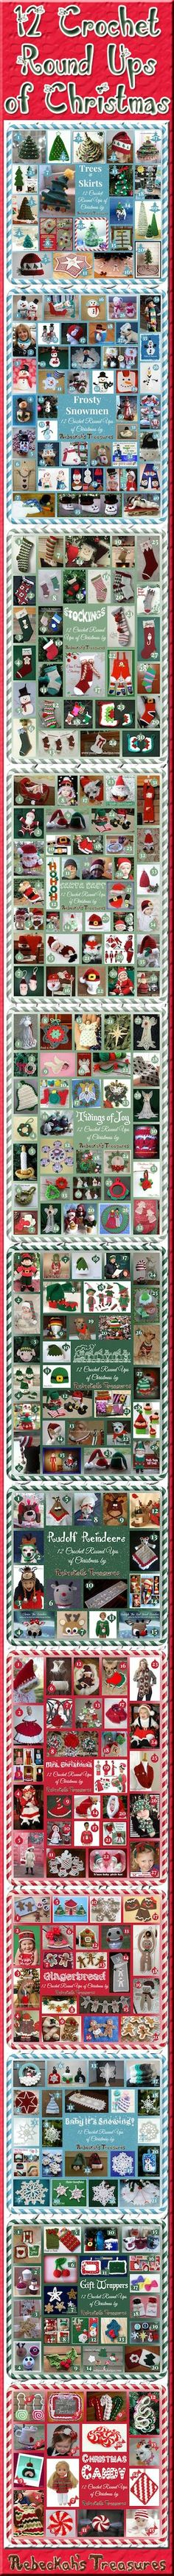 12 Crochet Round Ups of Christmas by Rebeckah's Treasures (@beckastreasures) / Featuring 300+ christmas themed patterns from 50+ fabulous designers!